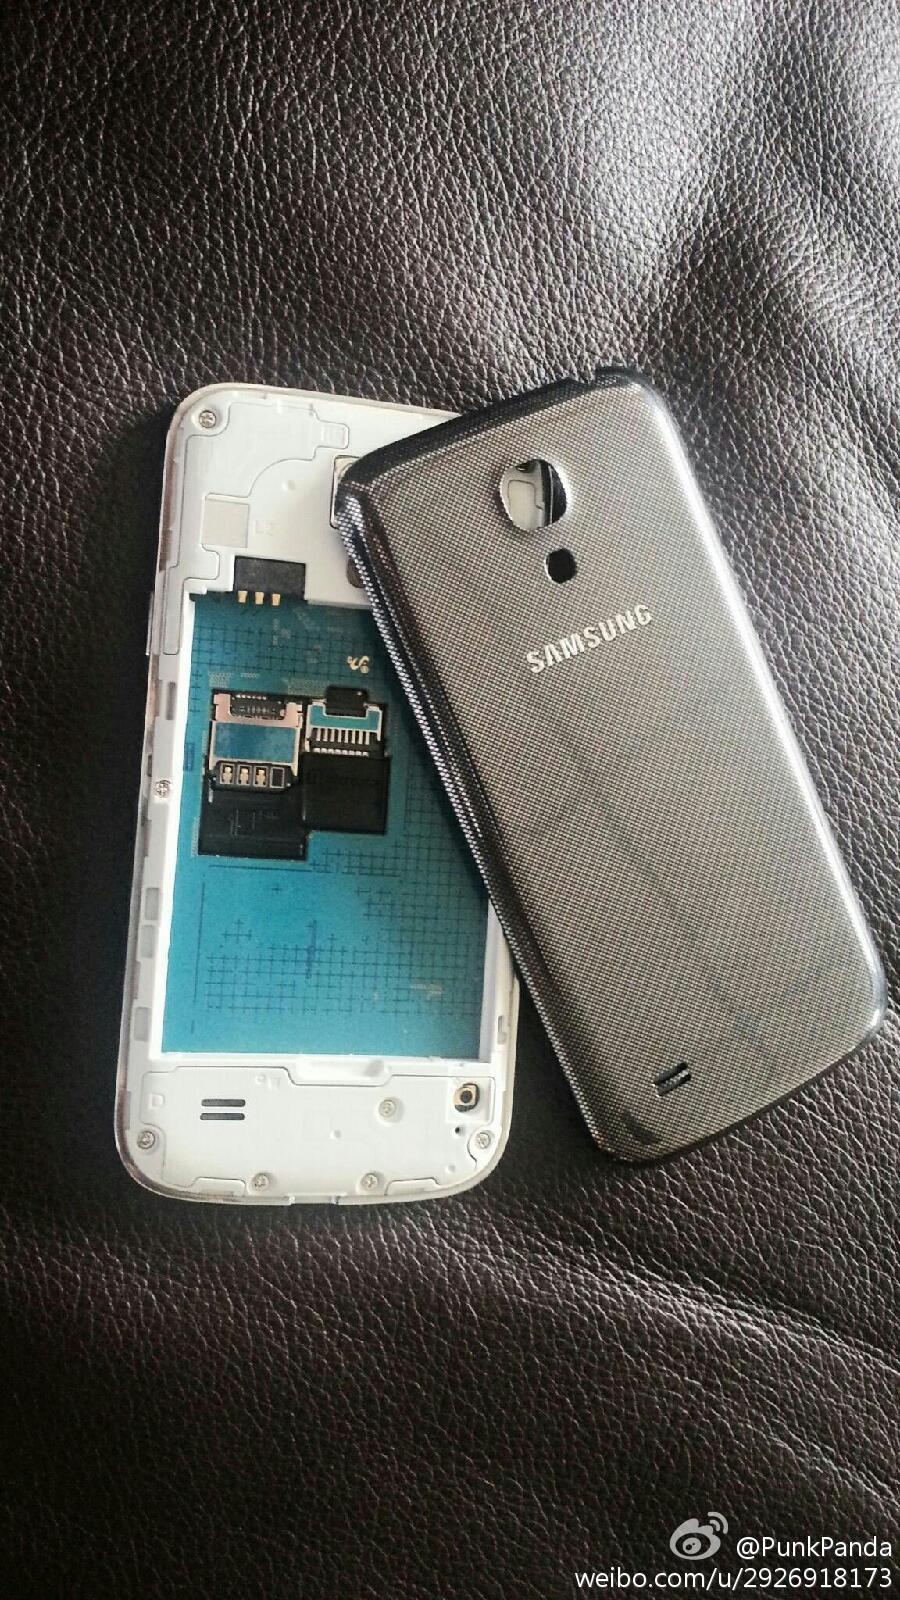 Samsung-Galaxy-S4-mini-leaks-out-in-perfect-clarity (5)